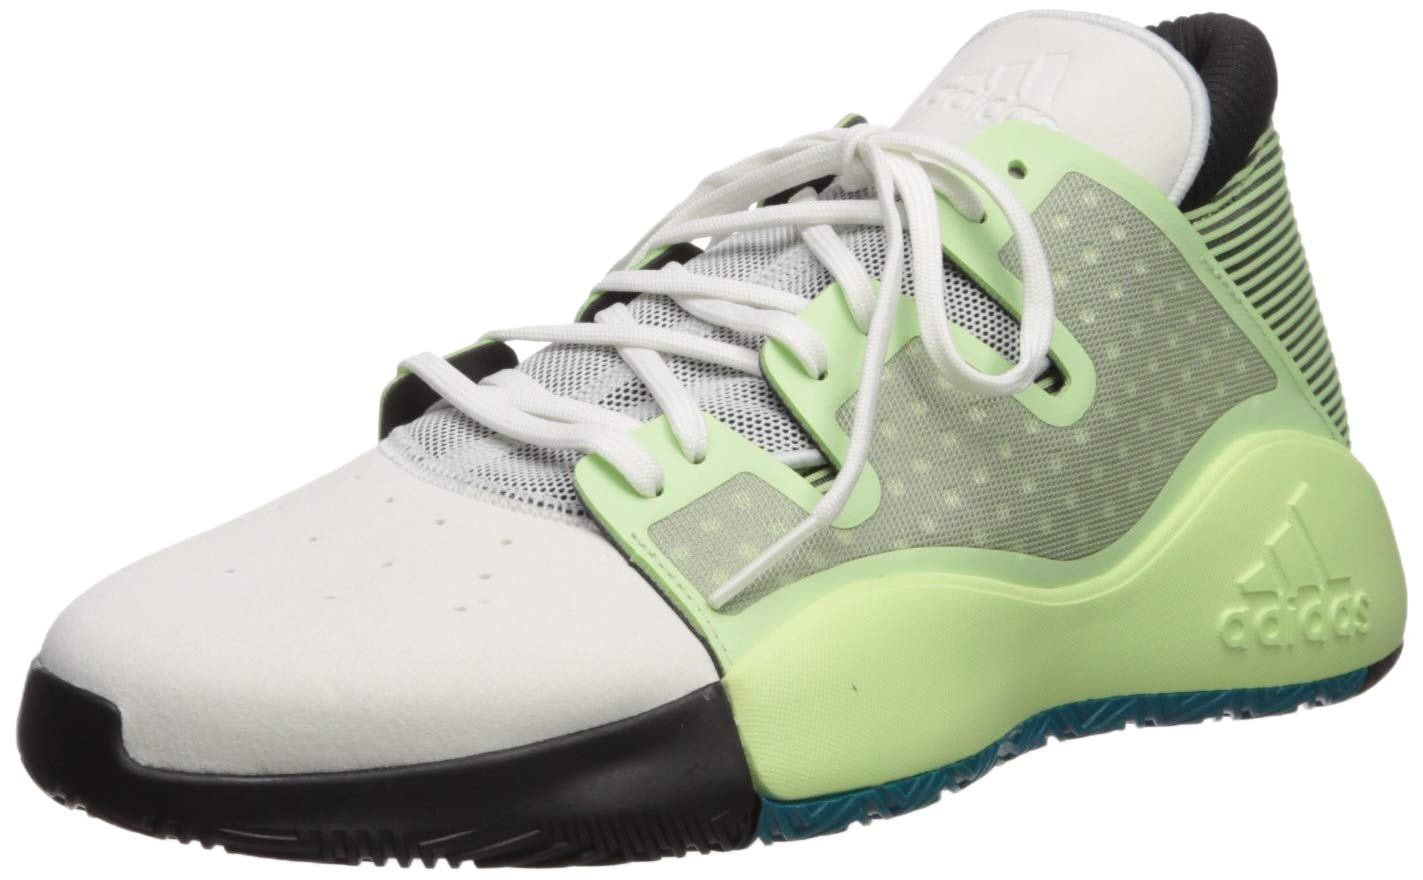 adidas Men's Pro Vision Basketball Shoe, Glow Green/Crystal White/Black, 8.5 M US by adidas